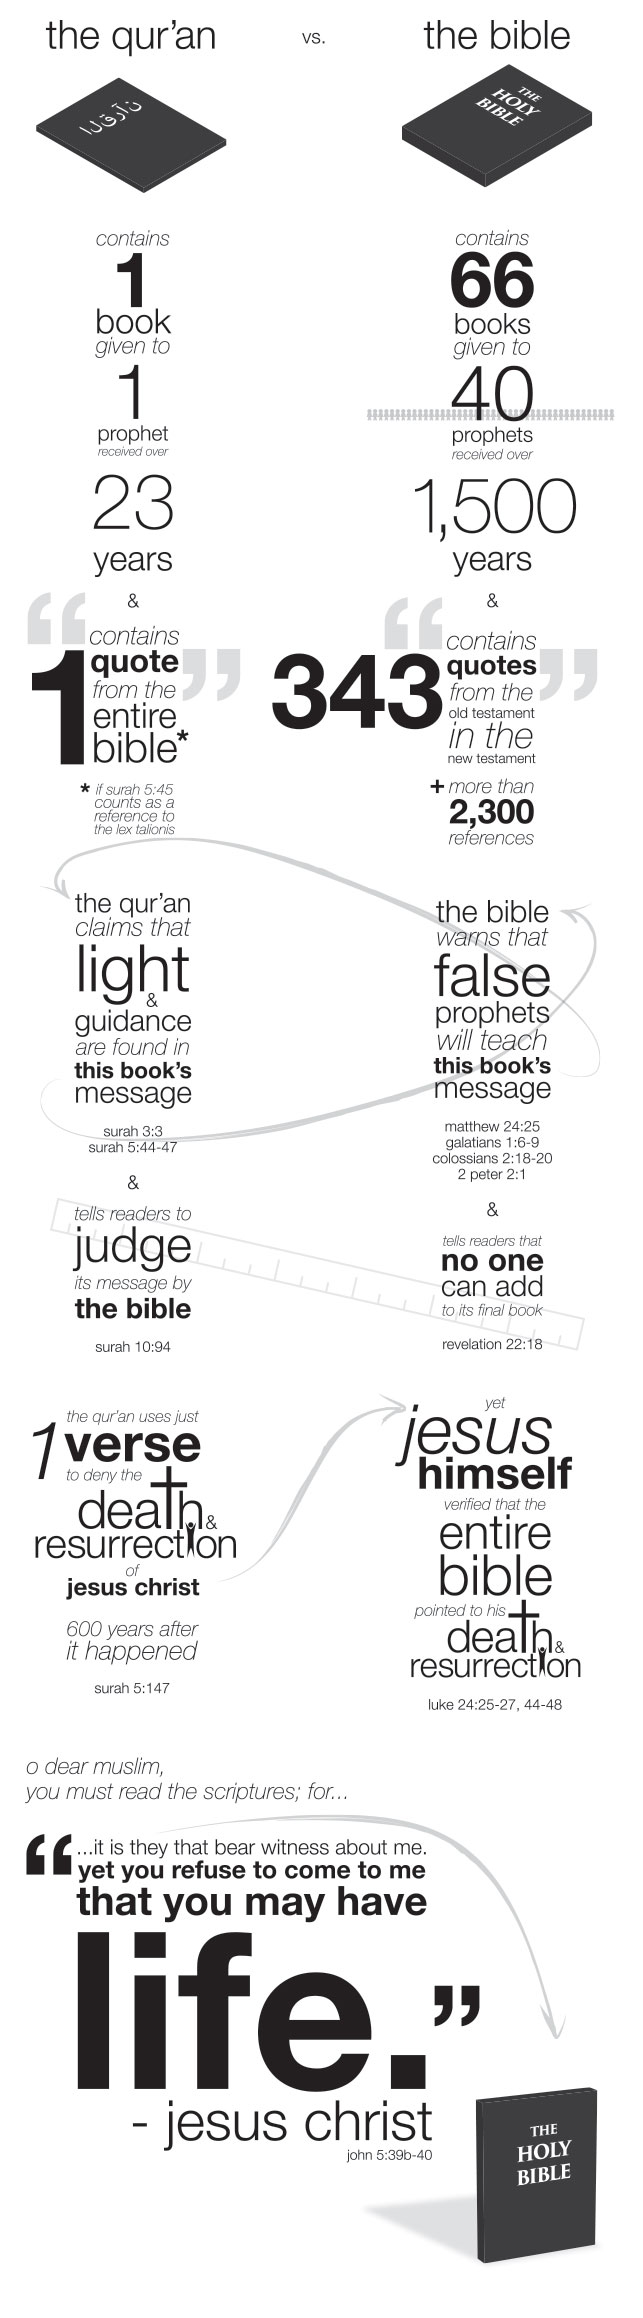 Which is God's word: the Bible or the Qur'an?